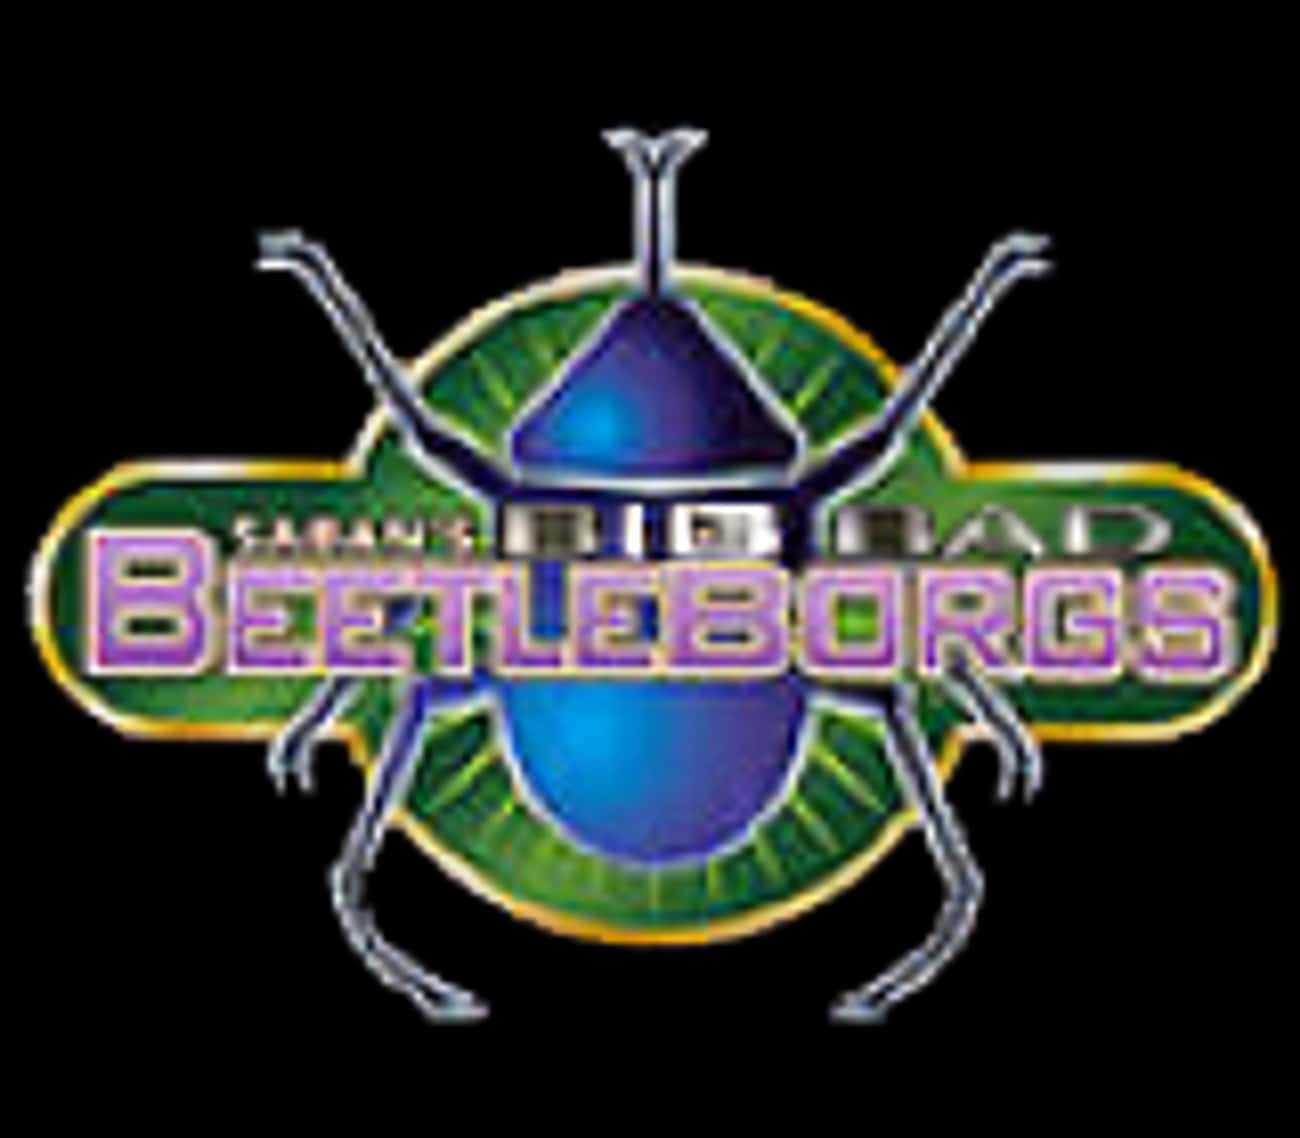 Big Bad Beetleborgs is listed (or ranked) 2 on the list What To Watch If You Love 'Power Rangers'